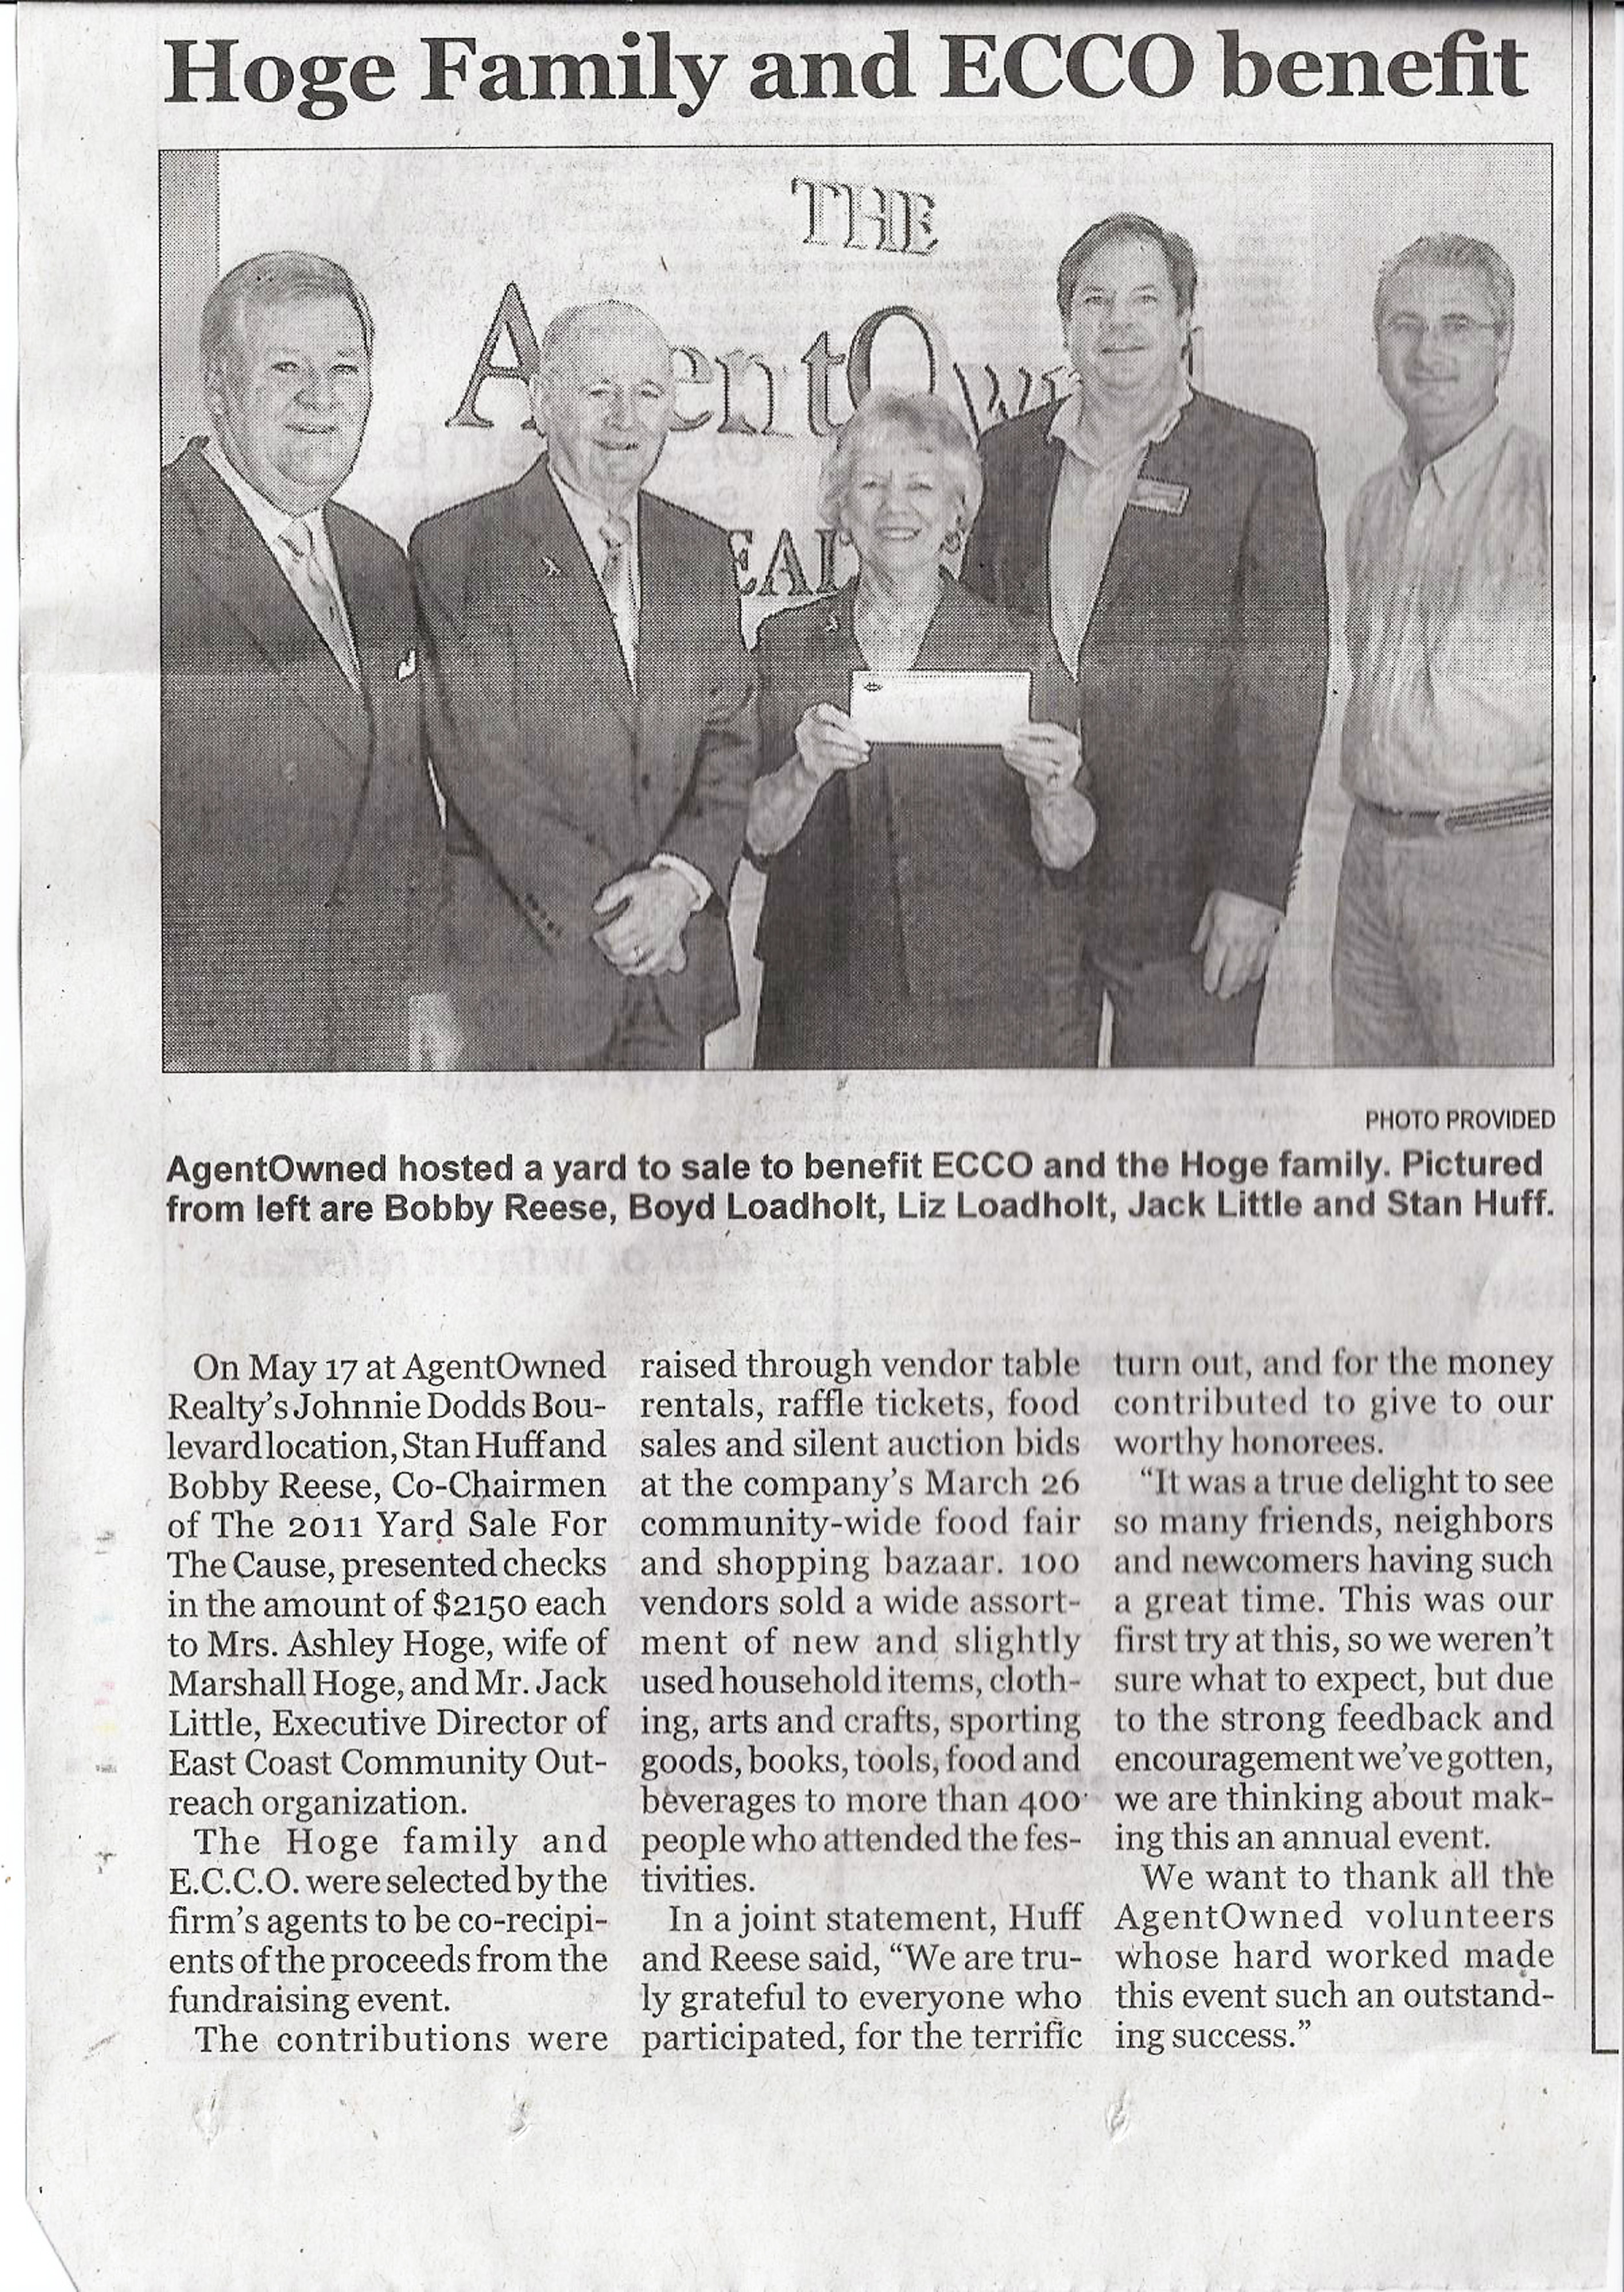 Newspaper article on Presentation of checks to Hoge family & ECCO